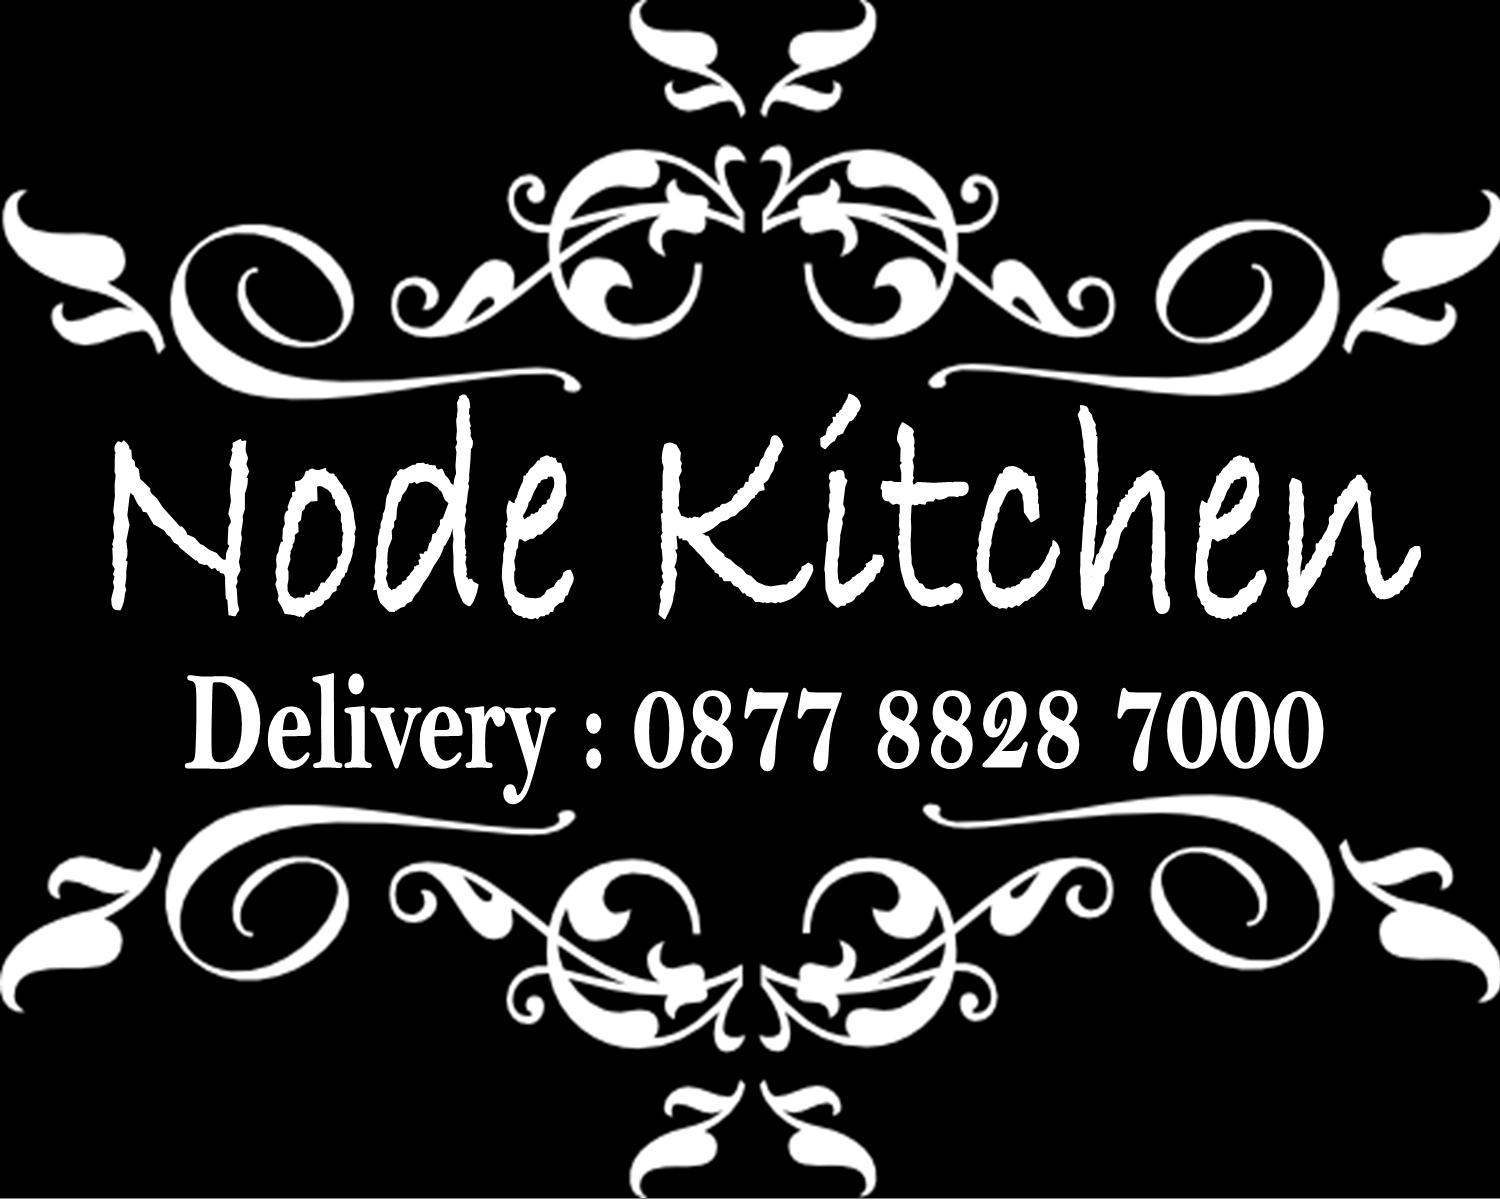 Stiker node kitchen